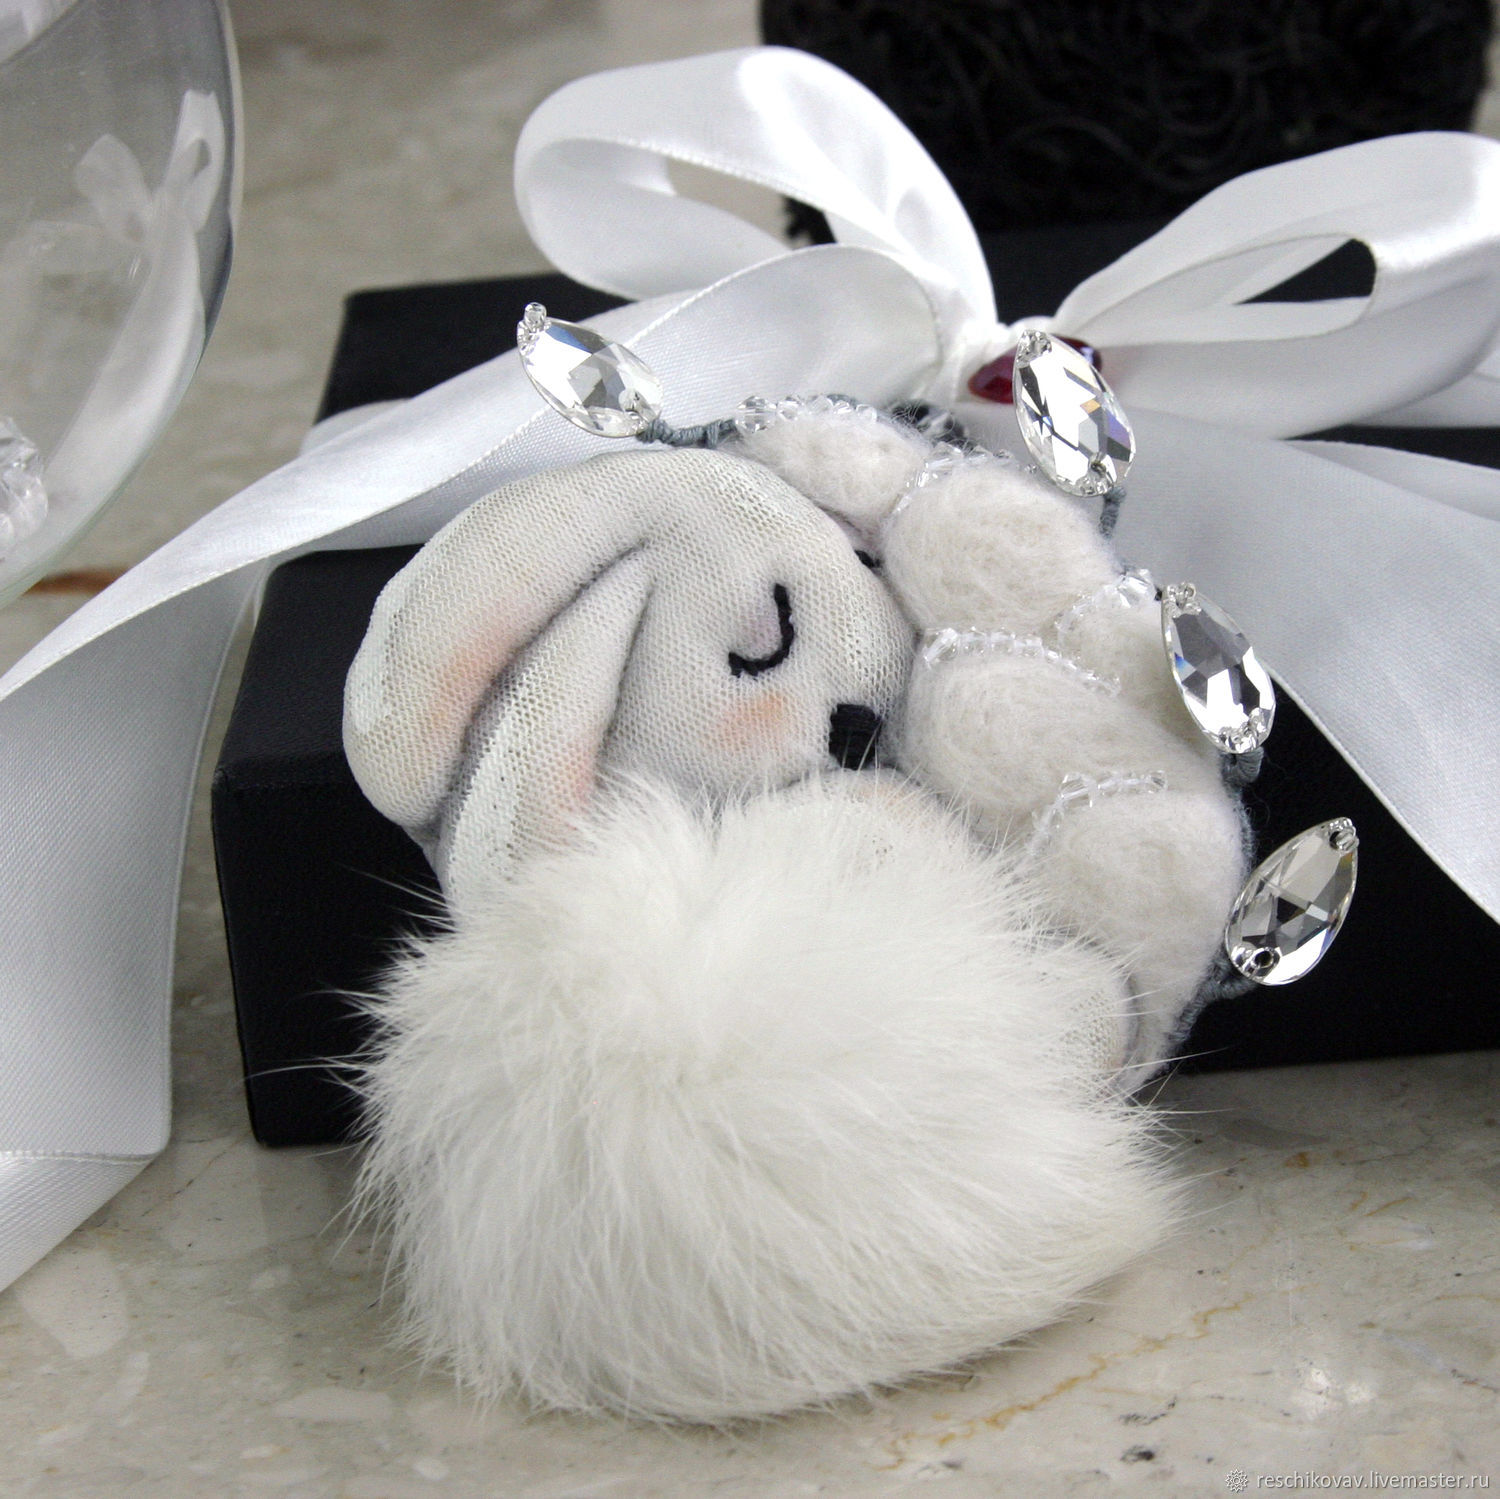 Bunny brooch sleeping with icy leaves, Brooches, Moscow,  Фото №1